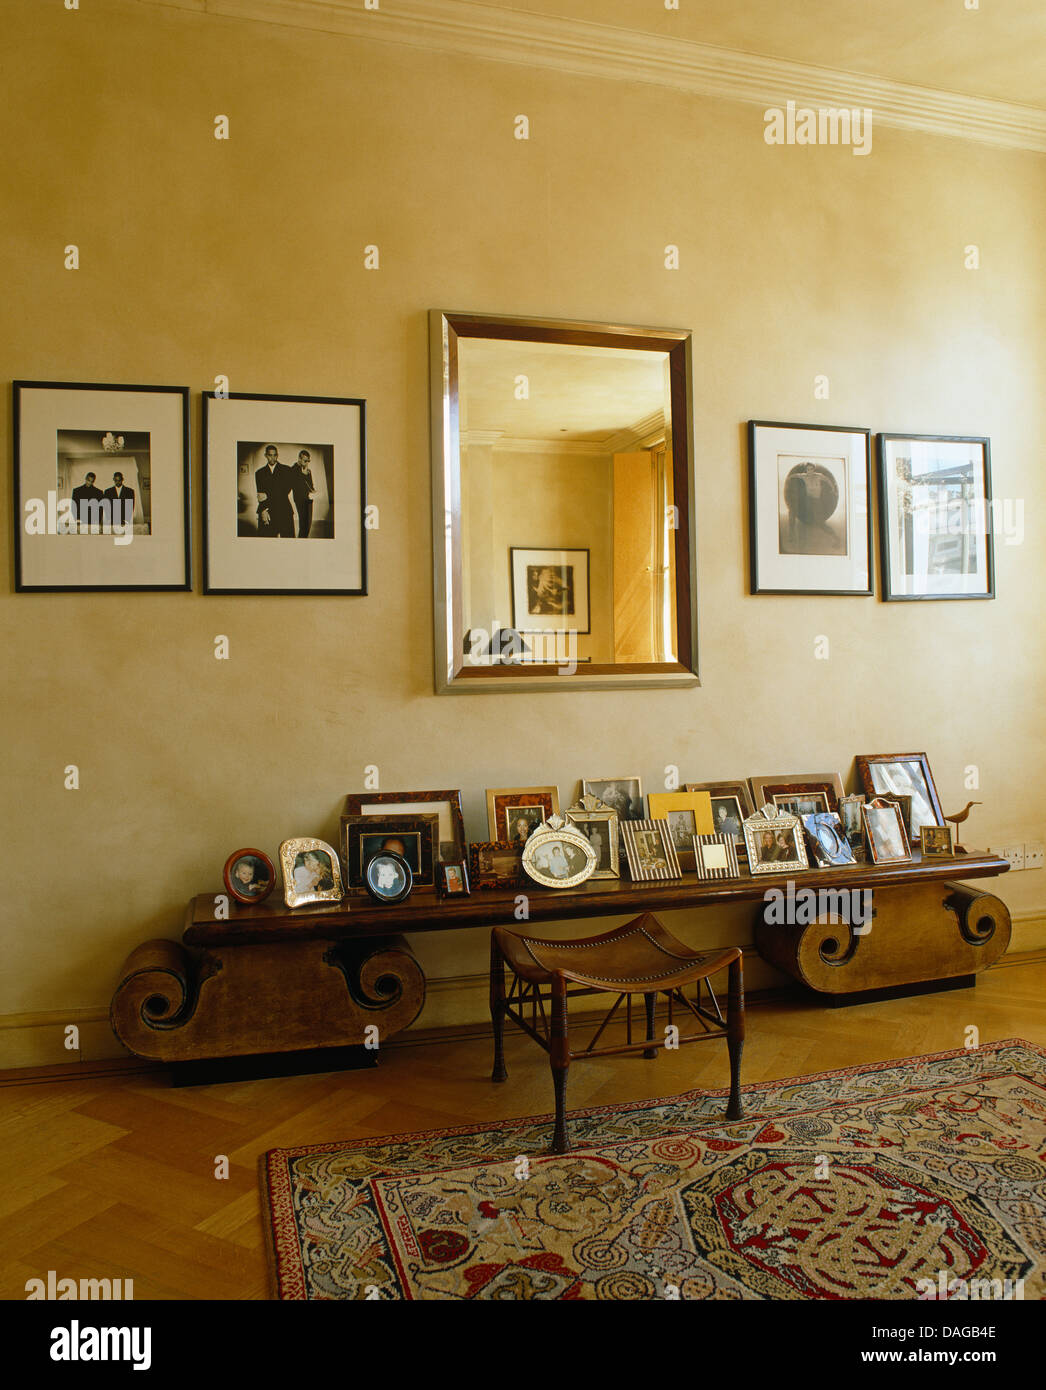 Framed Black+white Photographs On Either Side Of Mirror Above Low Console  Table With Framed Family Photographs In Modern Bedroom